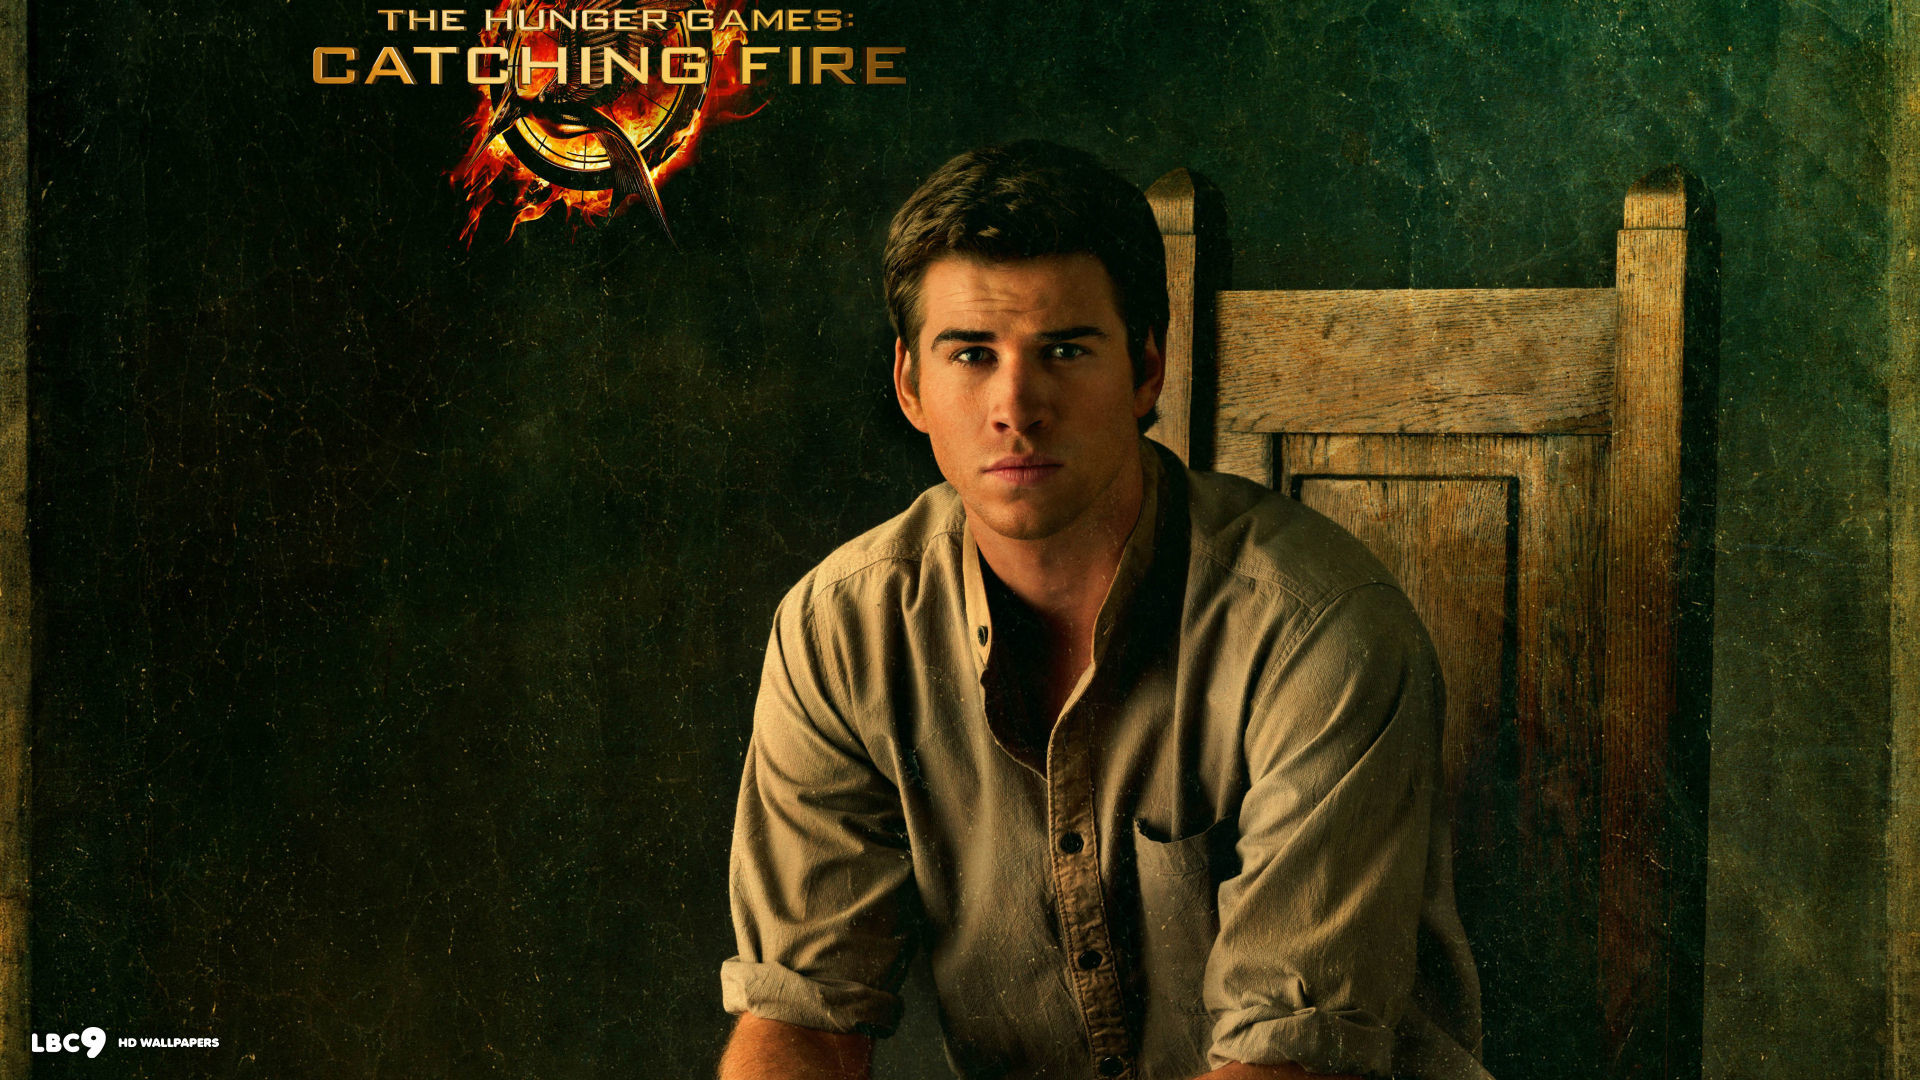 1920x1080 gale hunger games catching fire